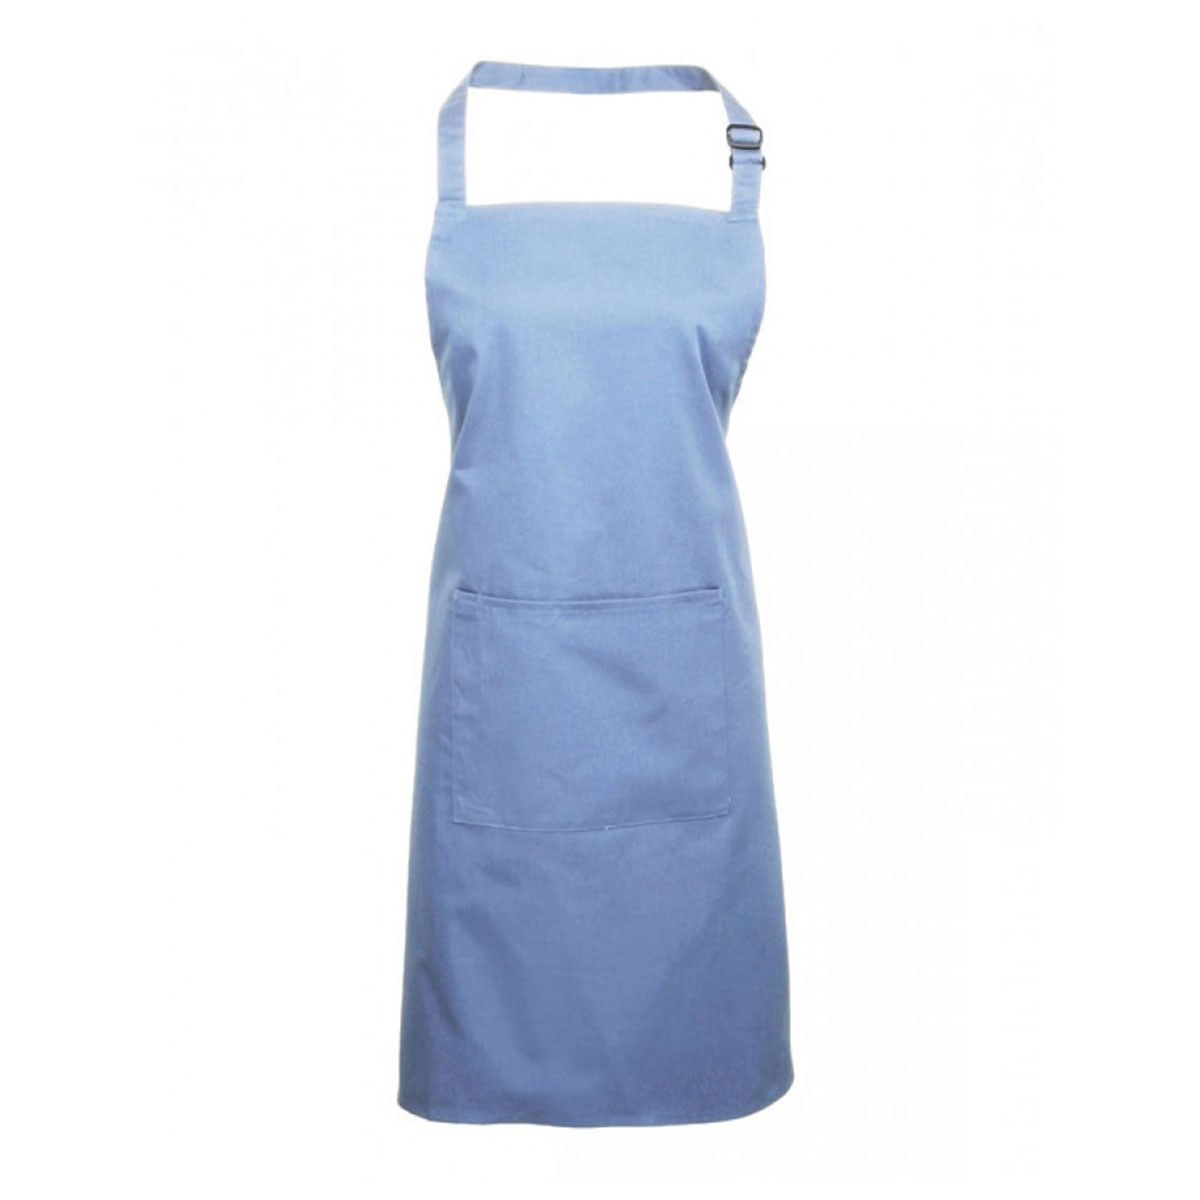 Colours Bib Apron with Pocket - pr154_mid-blue